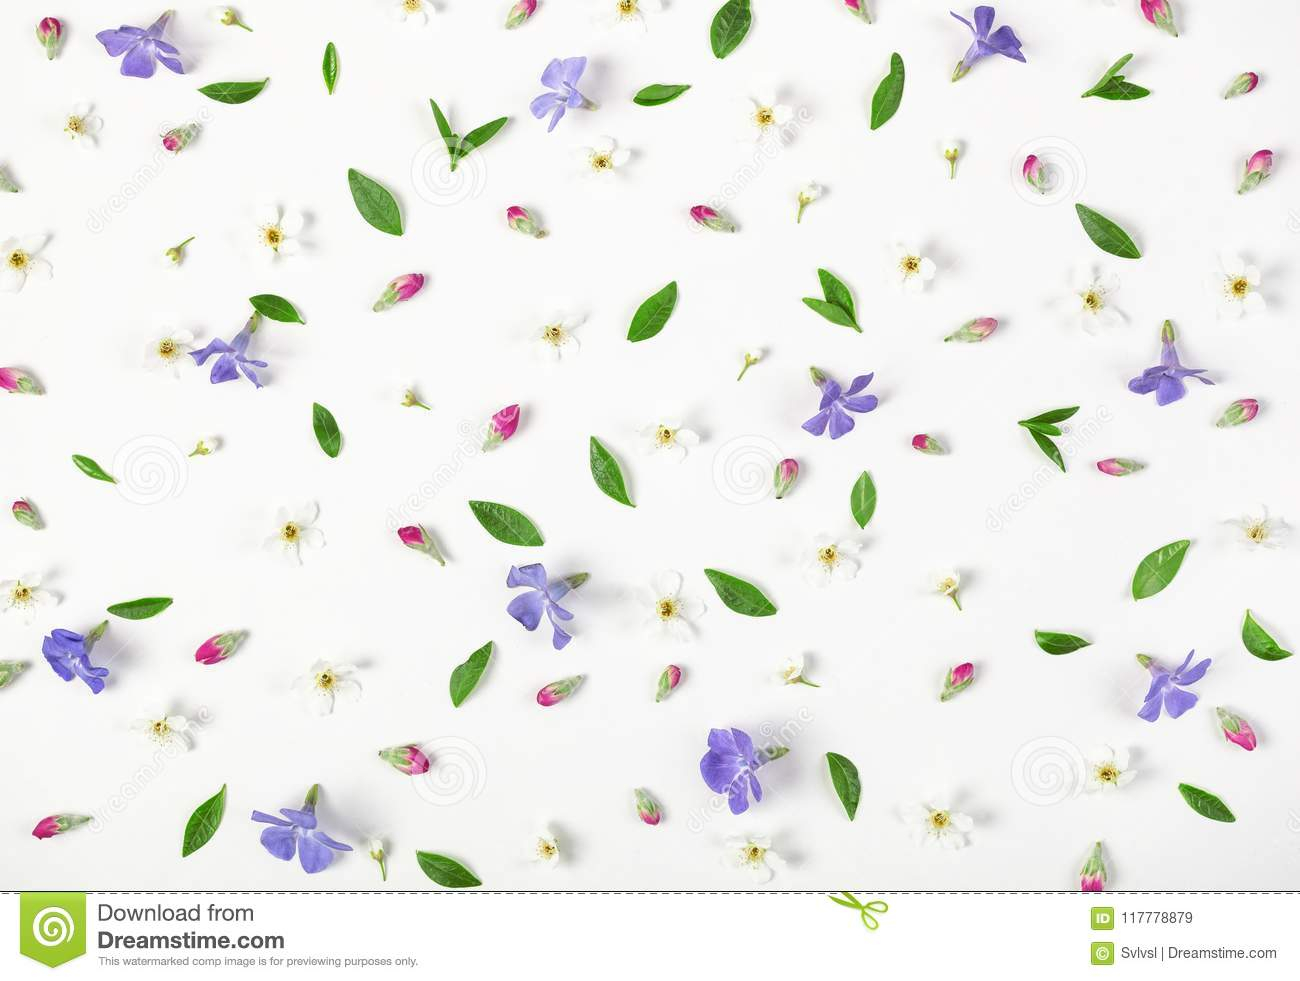 Floral pattern made of spring flowers, lilac wildflowers, pink buds and leaves isolated on white background. Flat lay.